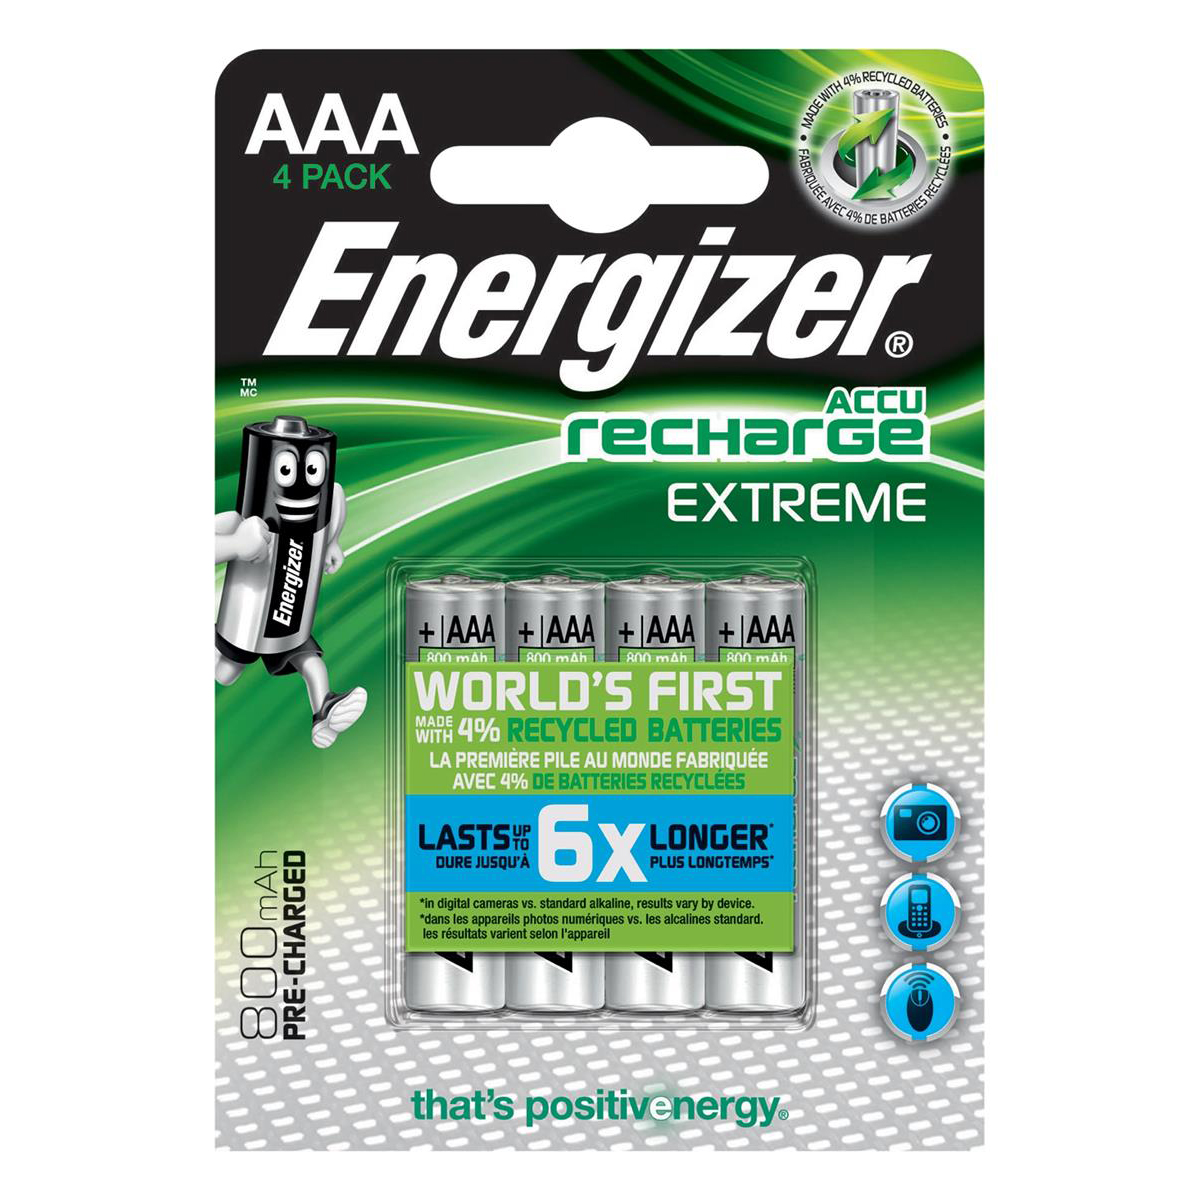 Energizer Battery Rechargeable Advanced NiMH Capacity 800mAh LR03 1.2V AAA Ref E300624400 [Pack 4]